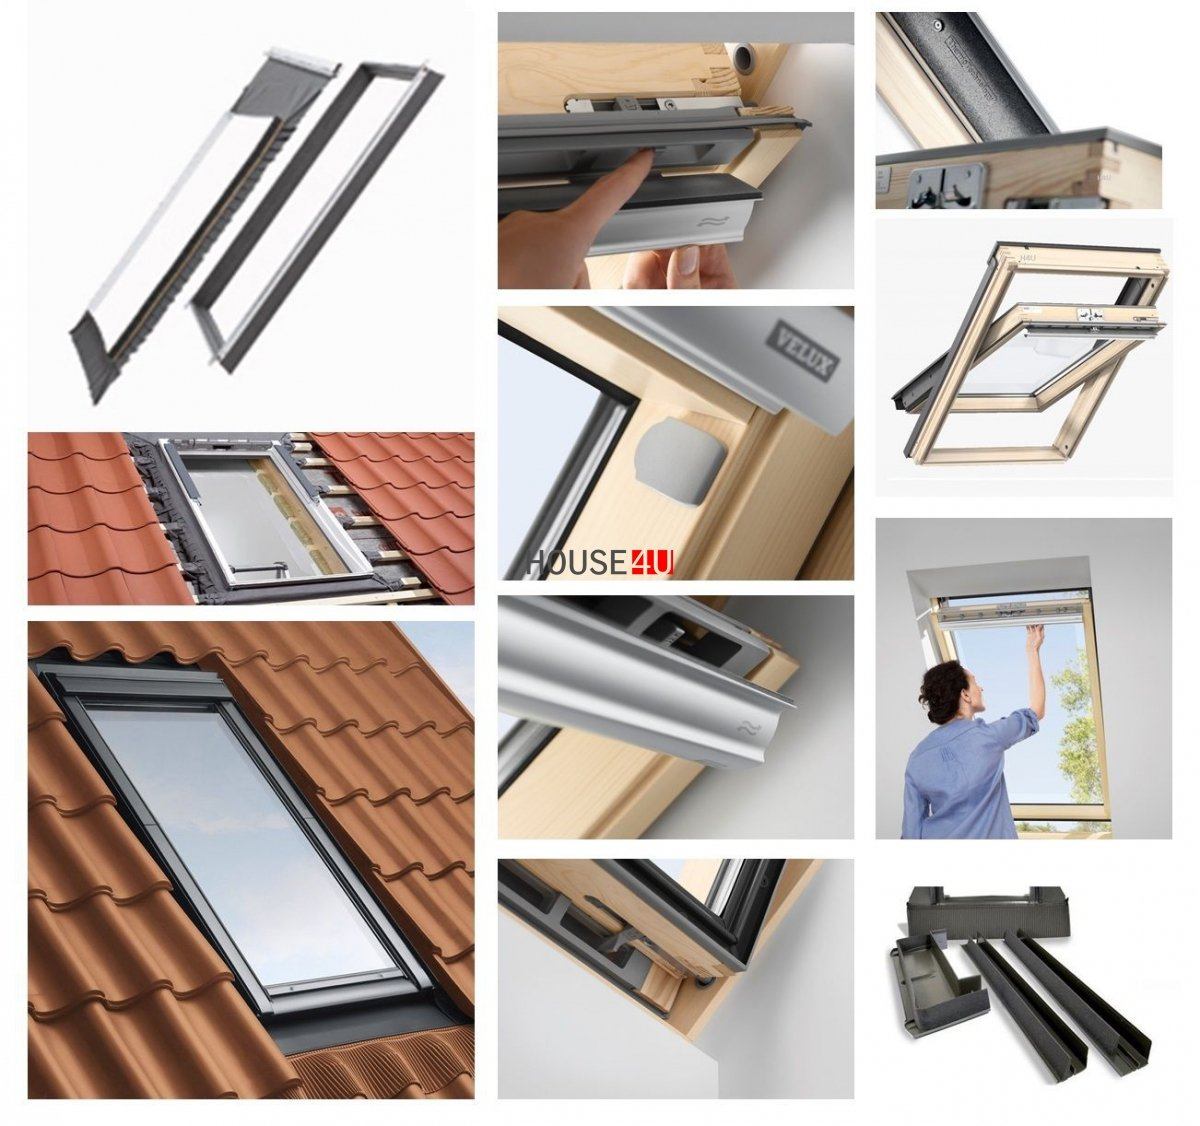 dachfenster set velux gll 1061 3 fach verglasung uw 1 1 schwingfenster holzfenster edj 2000. Black Bedroom Furniture Sets. Home Design Ideas